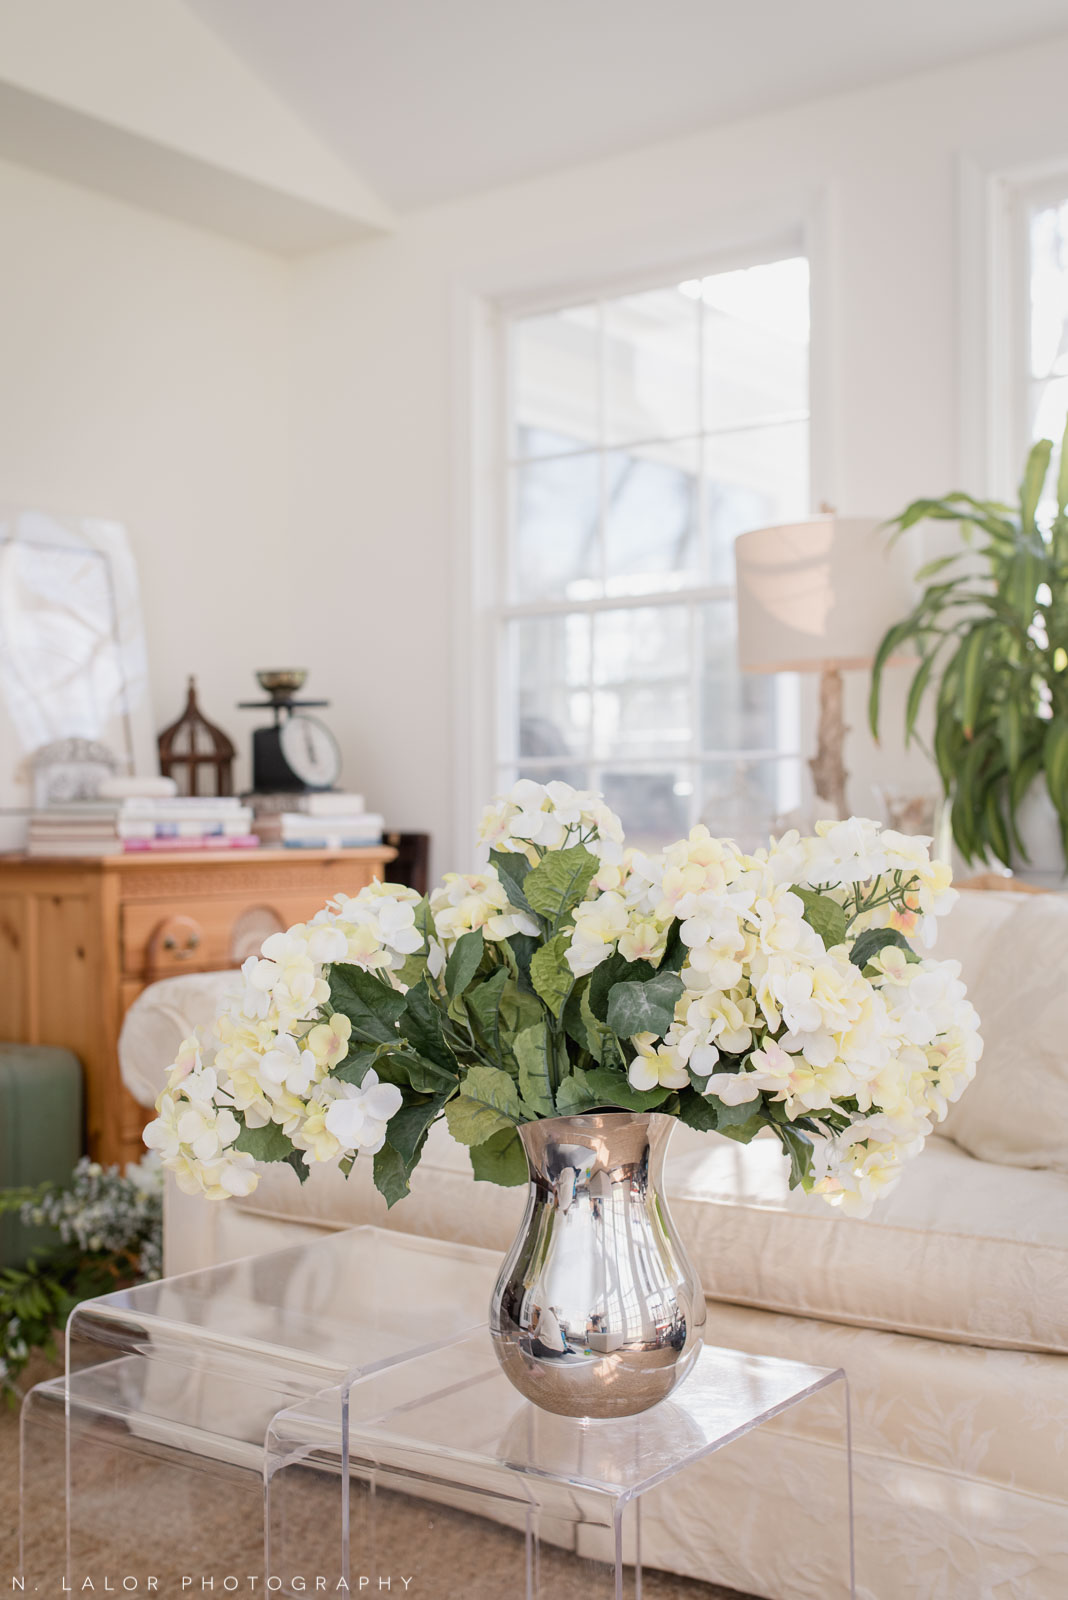 Family session interior details - flowers on nesting acrylic side tables. Photo by N. Lalor Photography.